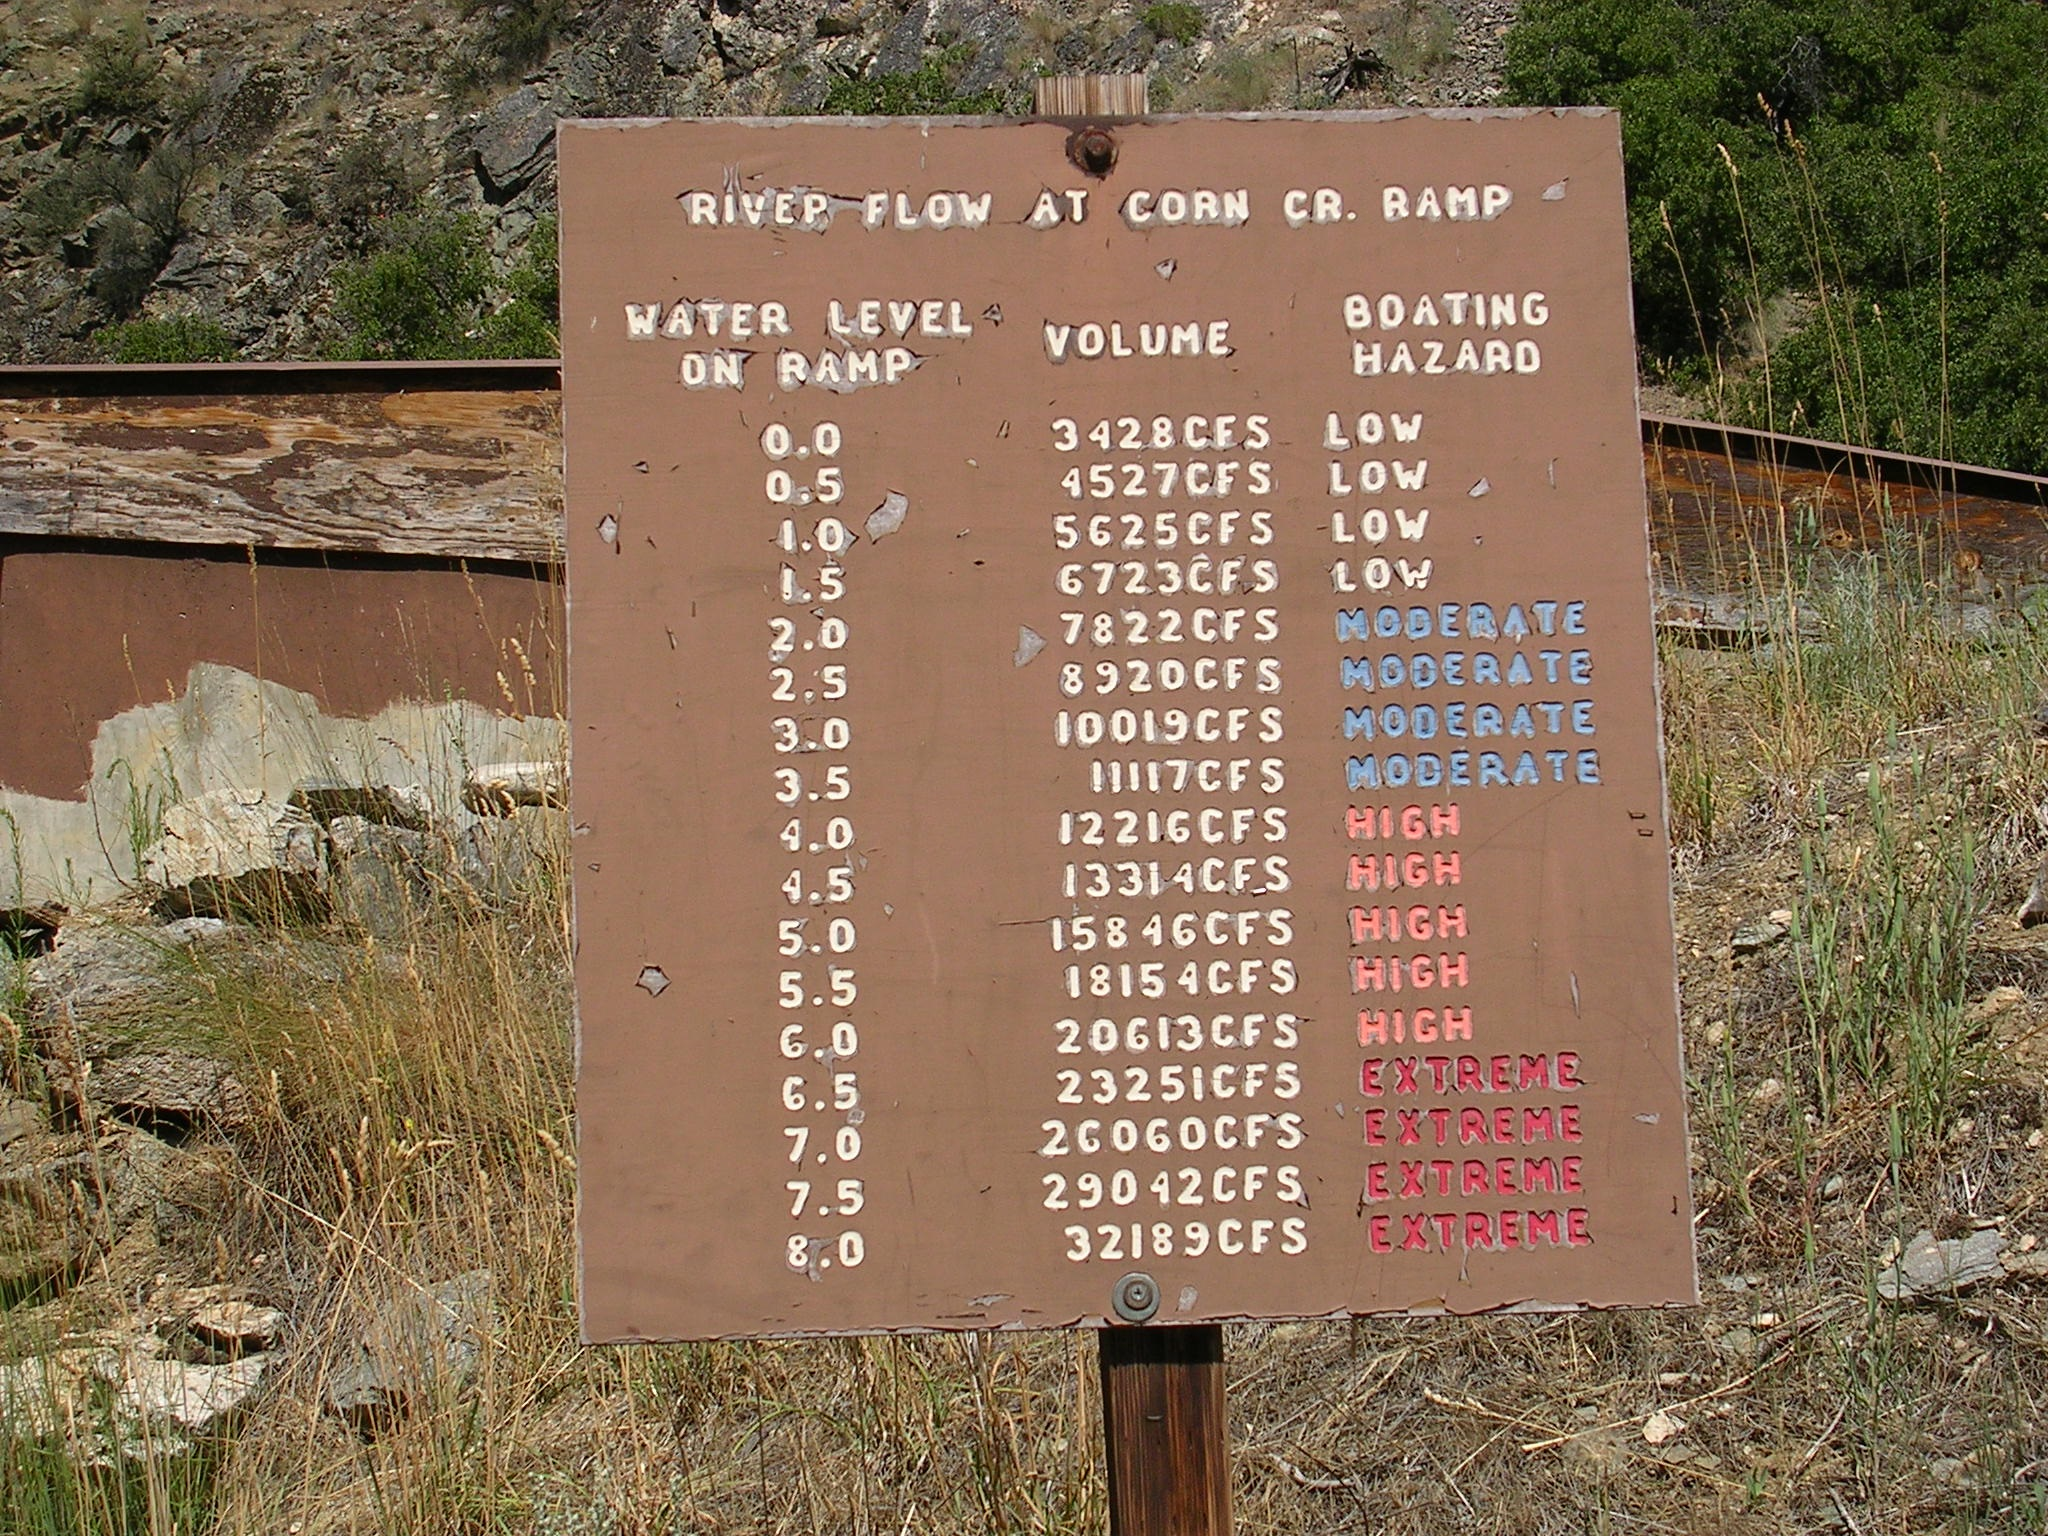 Click image for larger version  Name:Corn Creek sign.jpg Views:185 Size:1.21 MB ID:33143